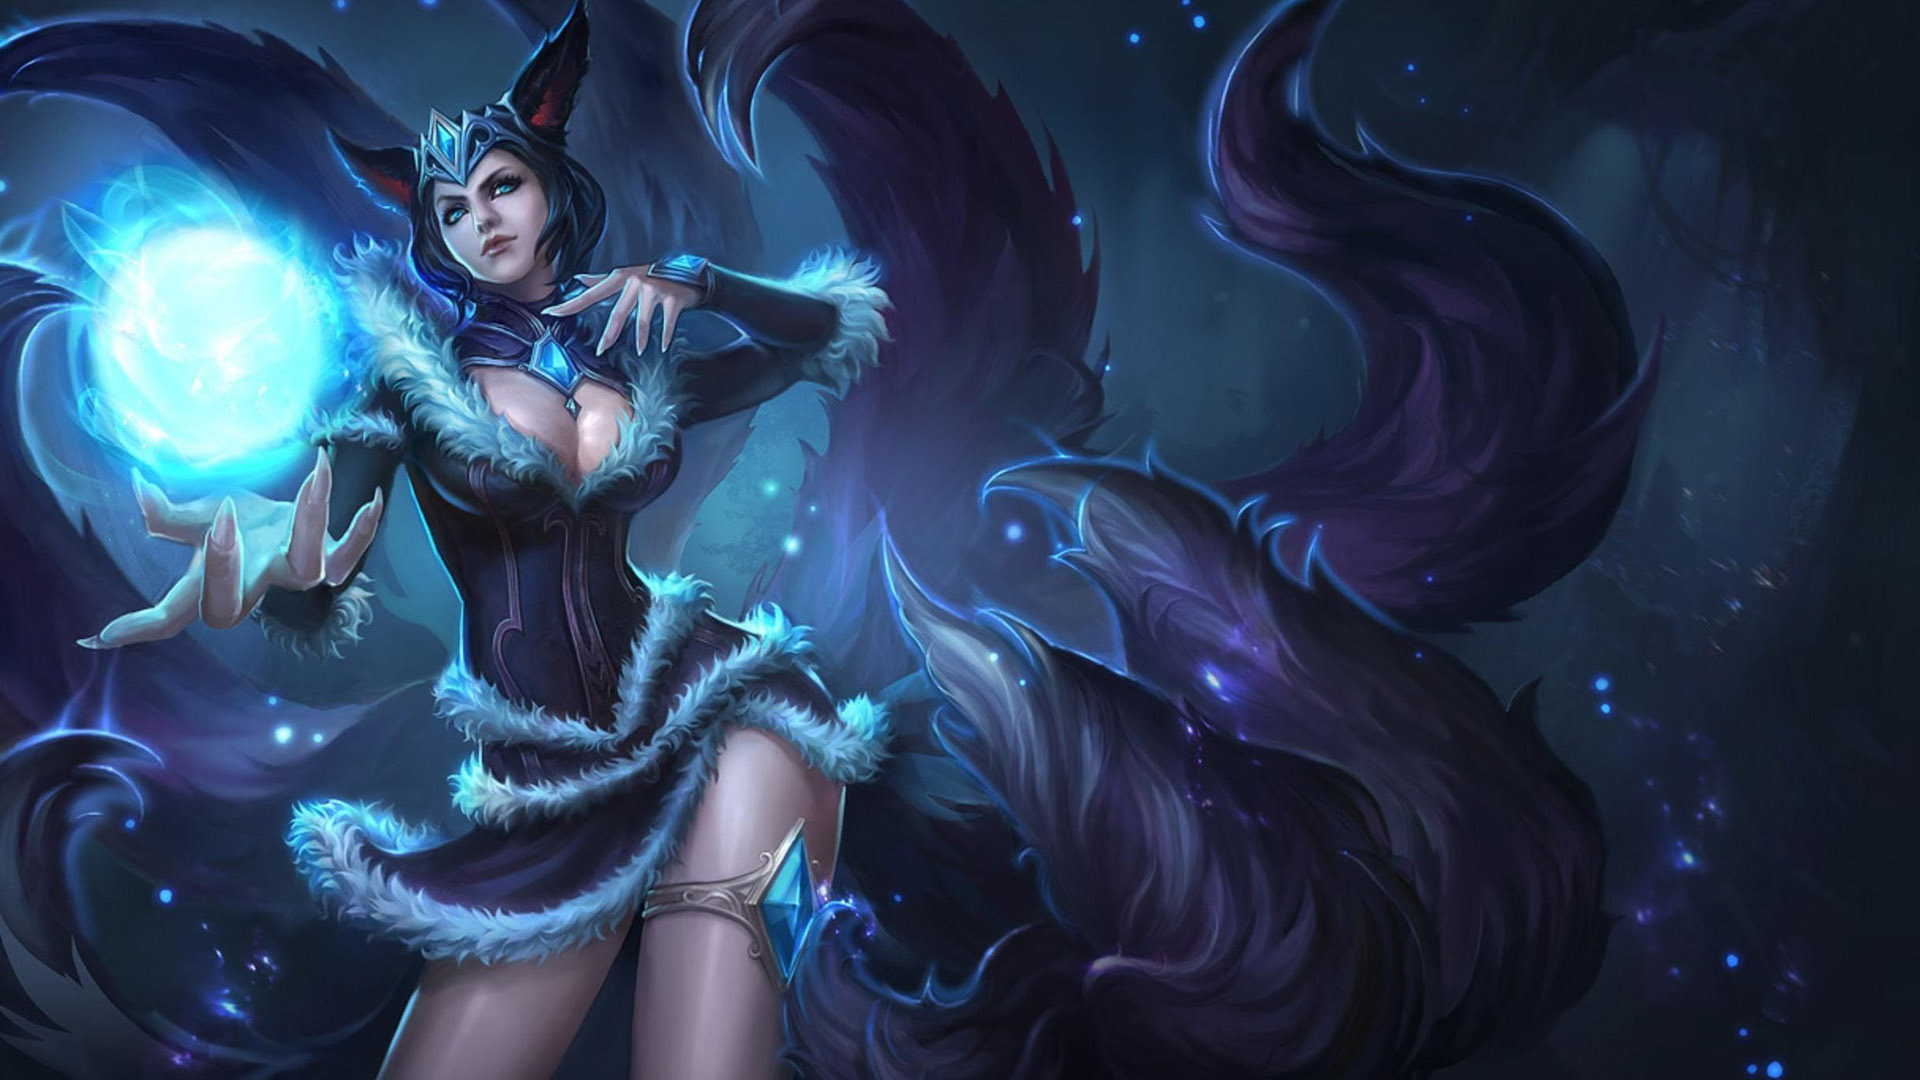 Free Download Ahri League Of Legends Wallpaper 1920x1080 For